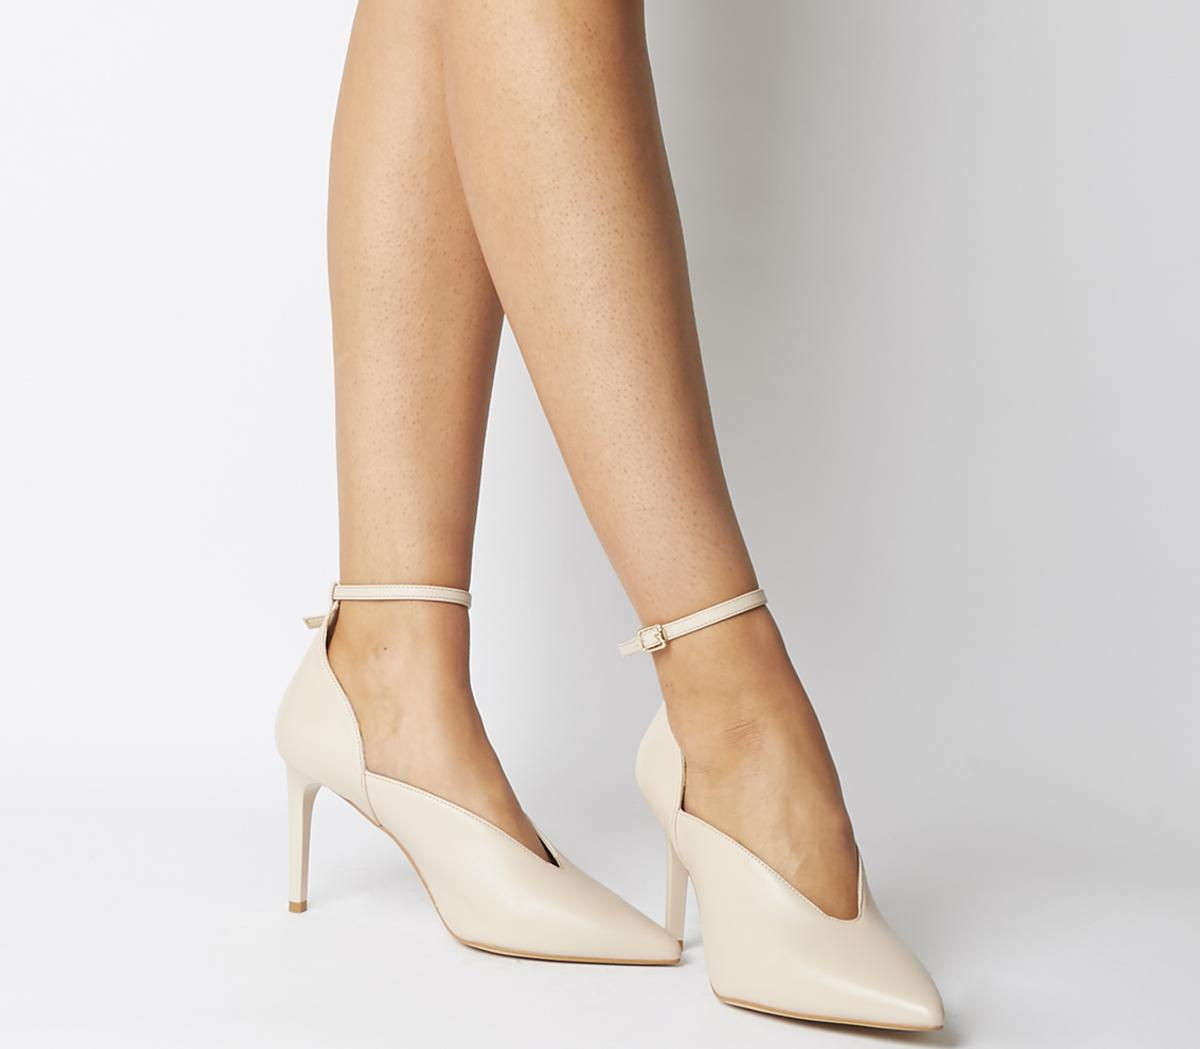 Hot Toddy Ankle Strap Shoe Boots